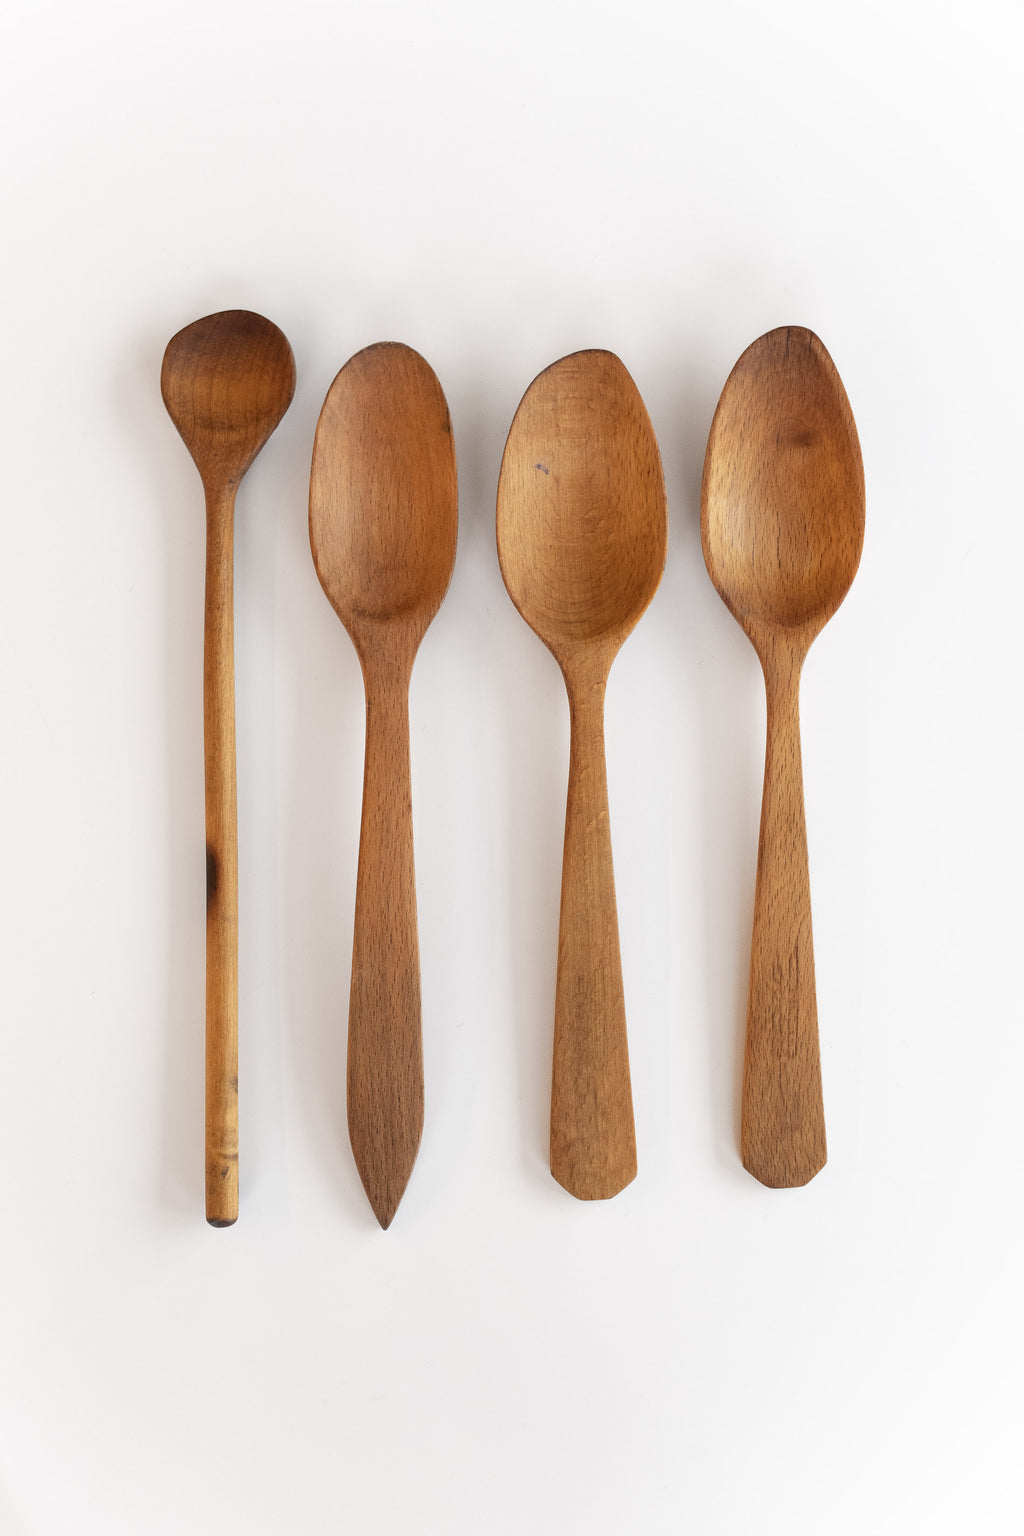 MEDIUM RESTORED WOOD SPOONS